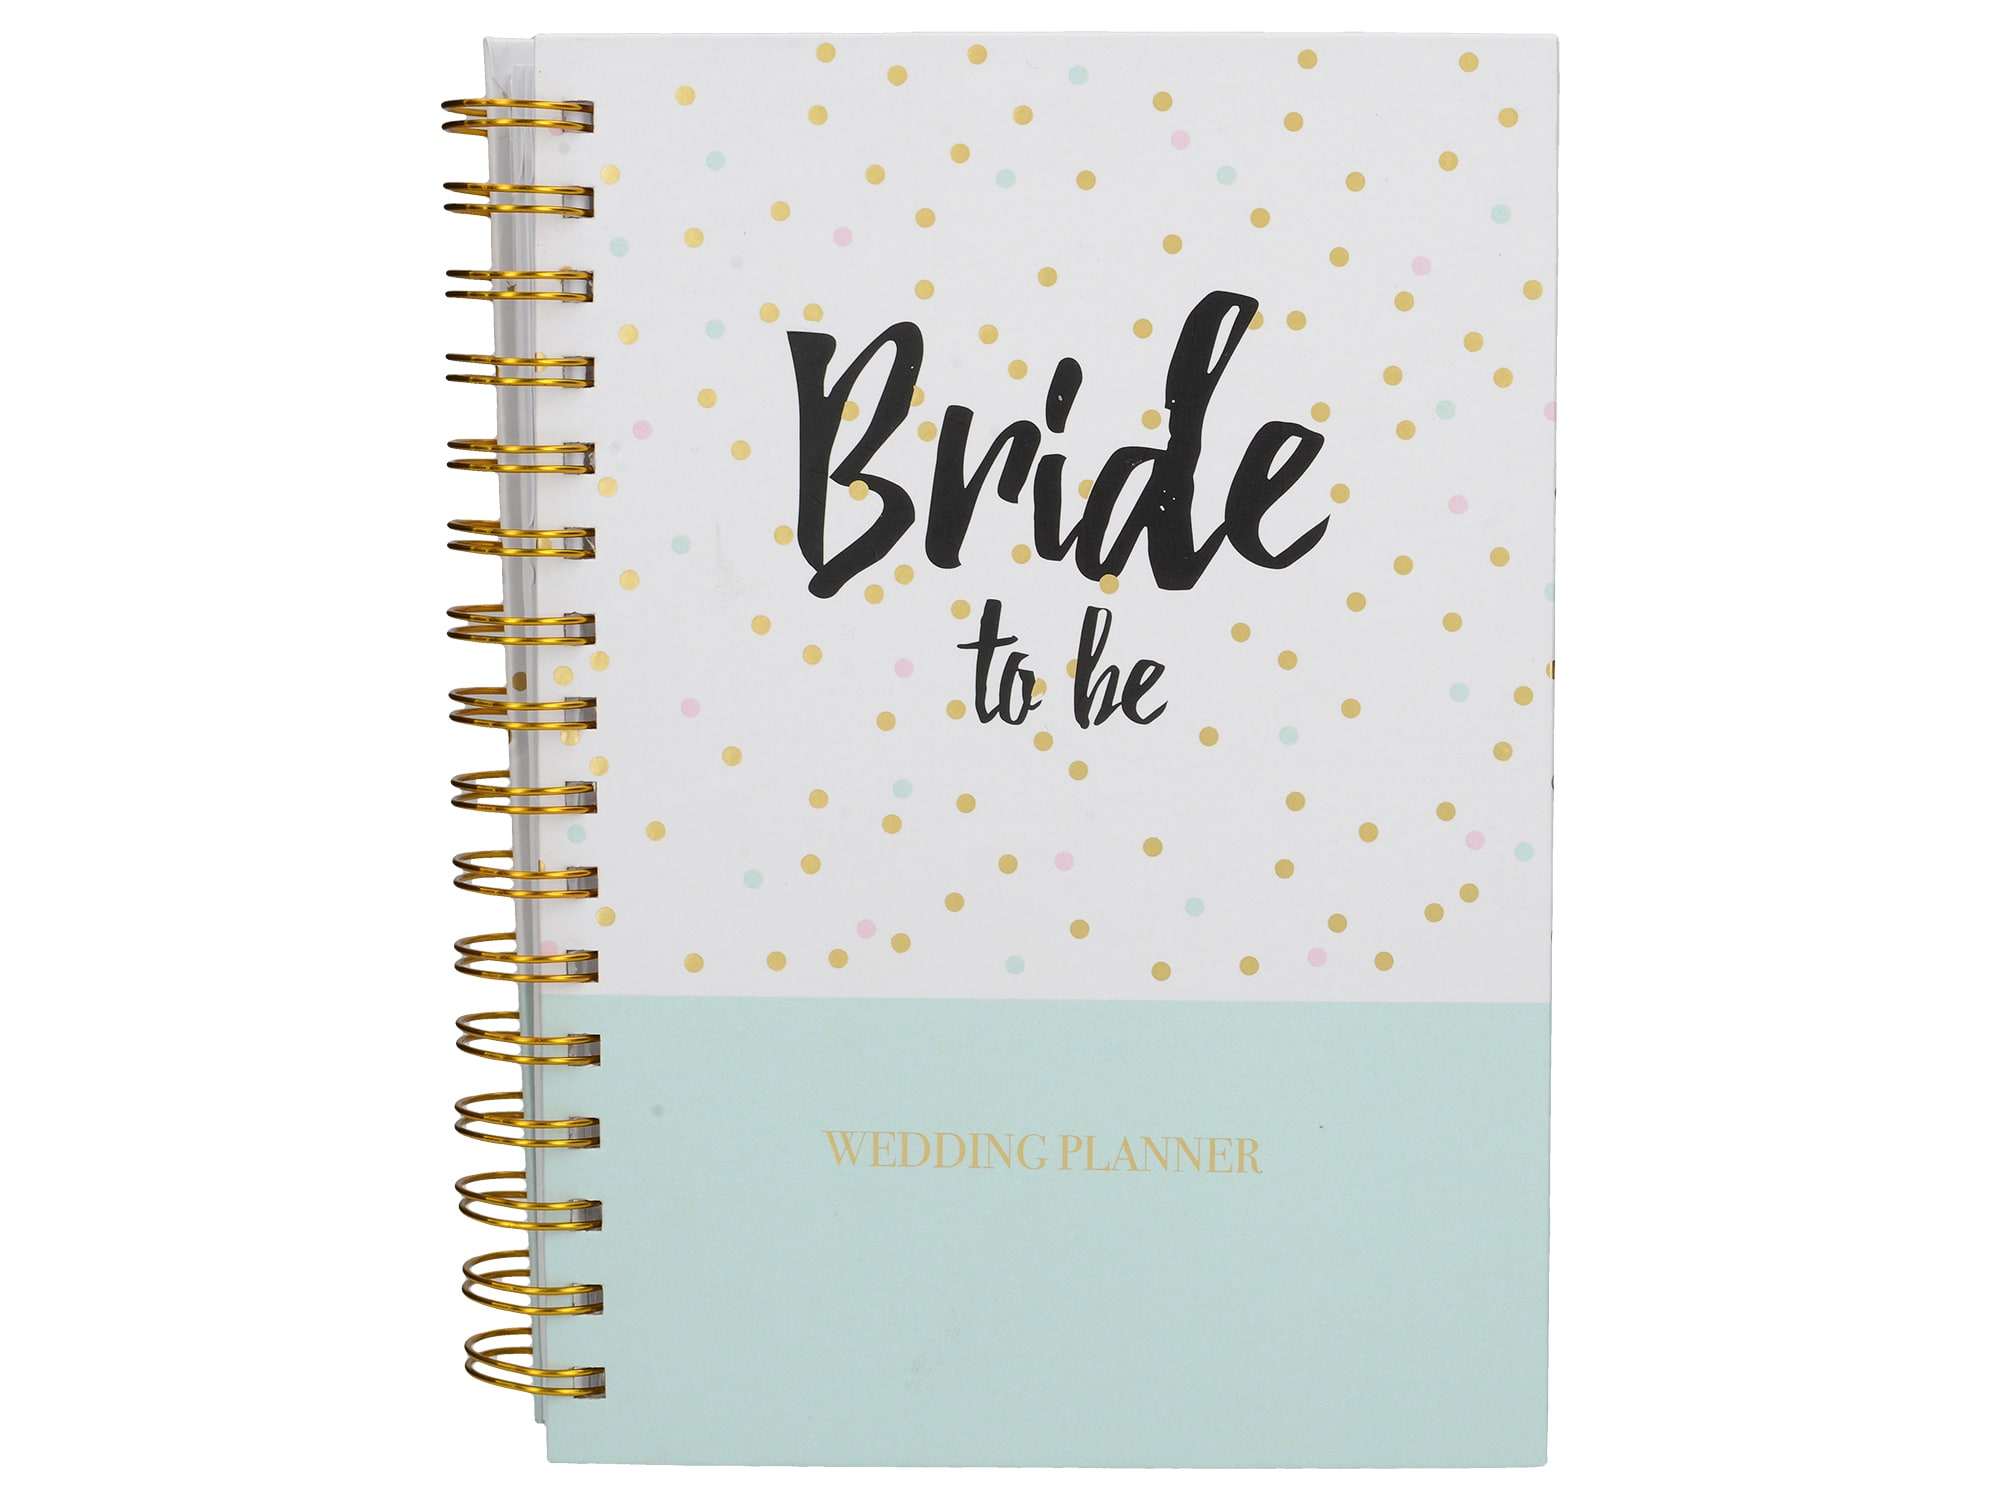 Creative Tops Ava & I Bride To Be Wedding Planner